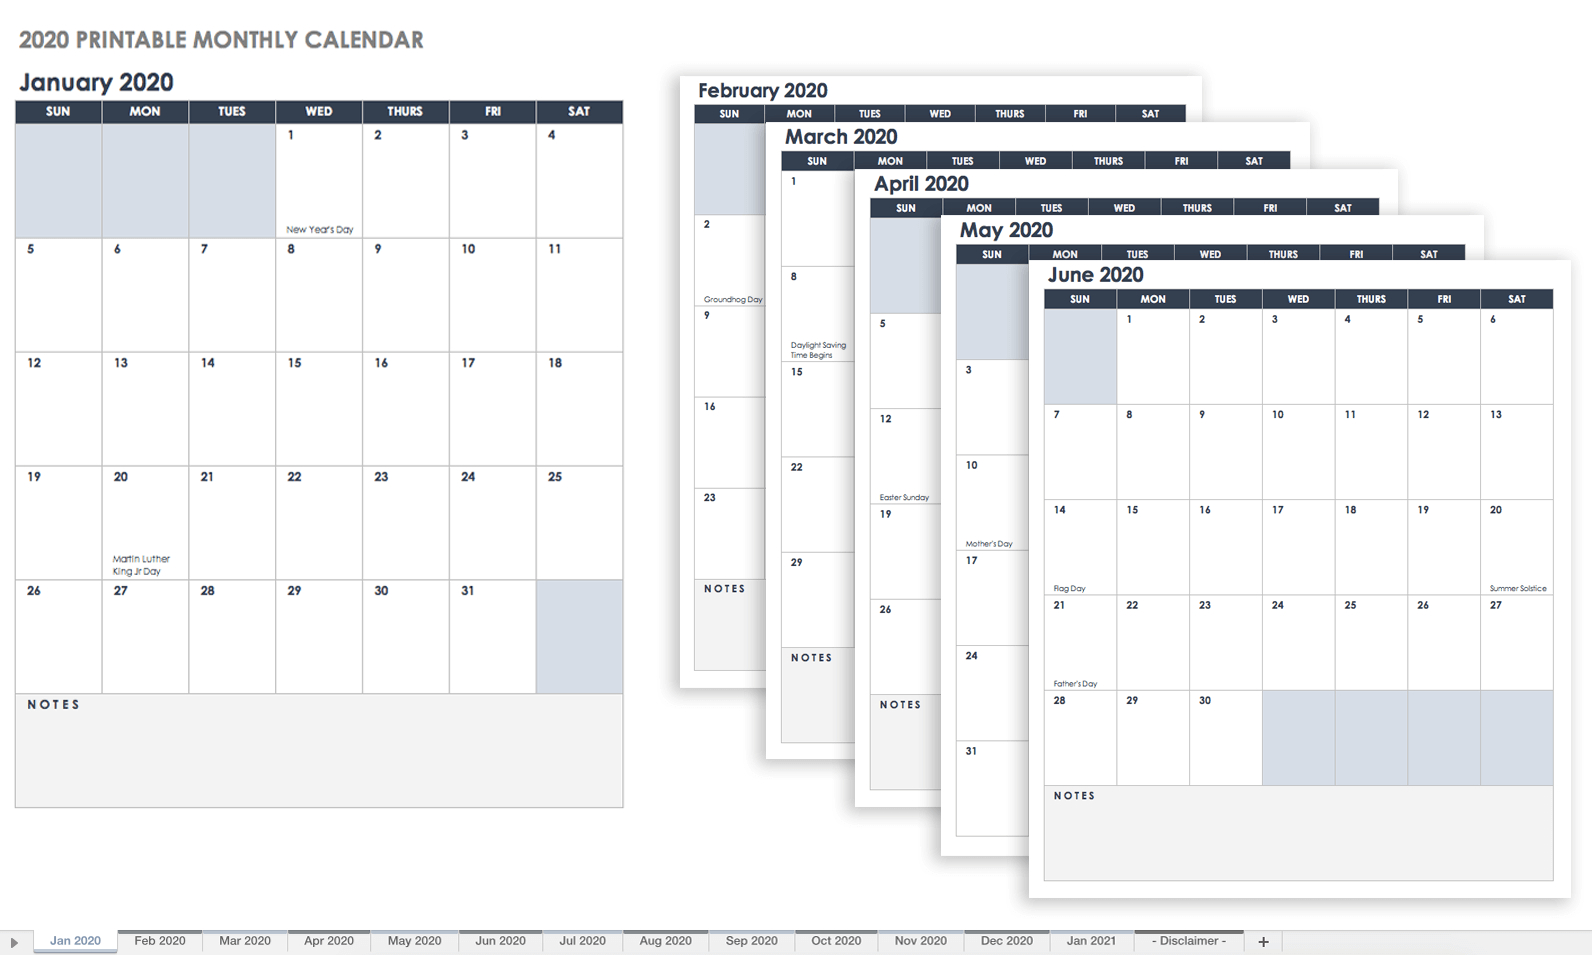 Free Blank Calendar Templates - Smartsheet intended for Blank Calendar With Only Weekdays